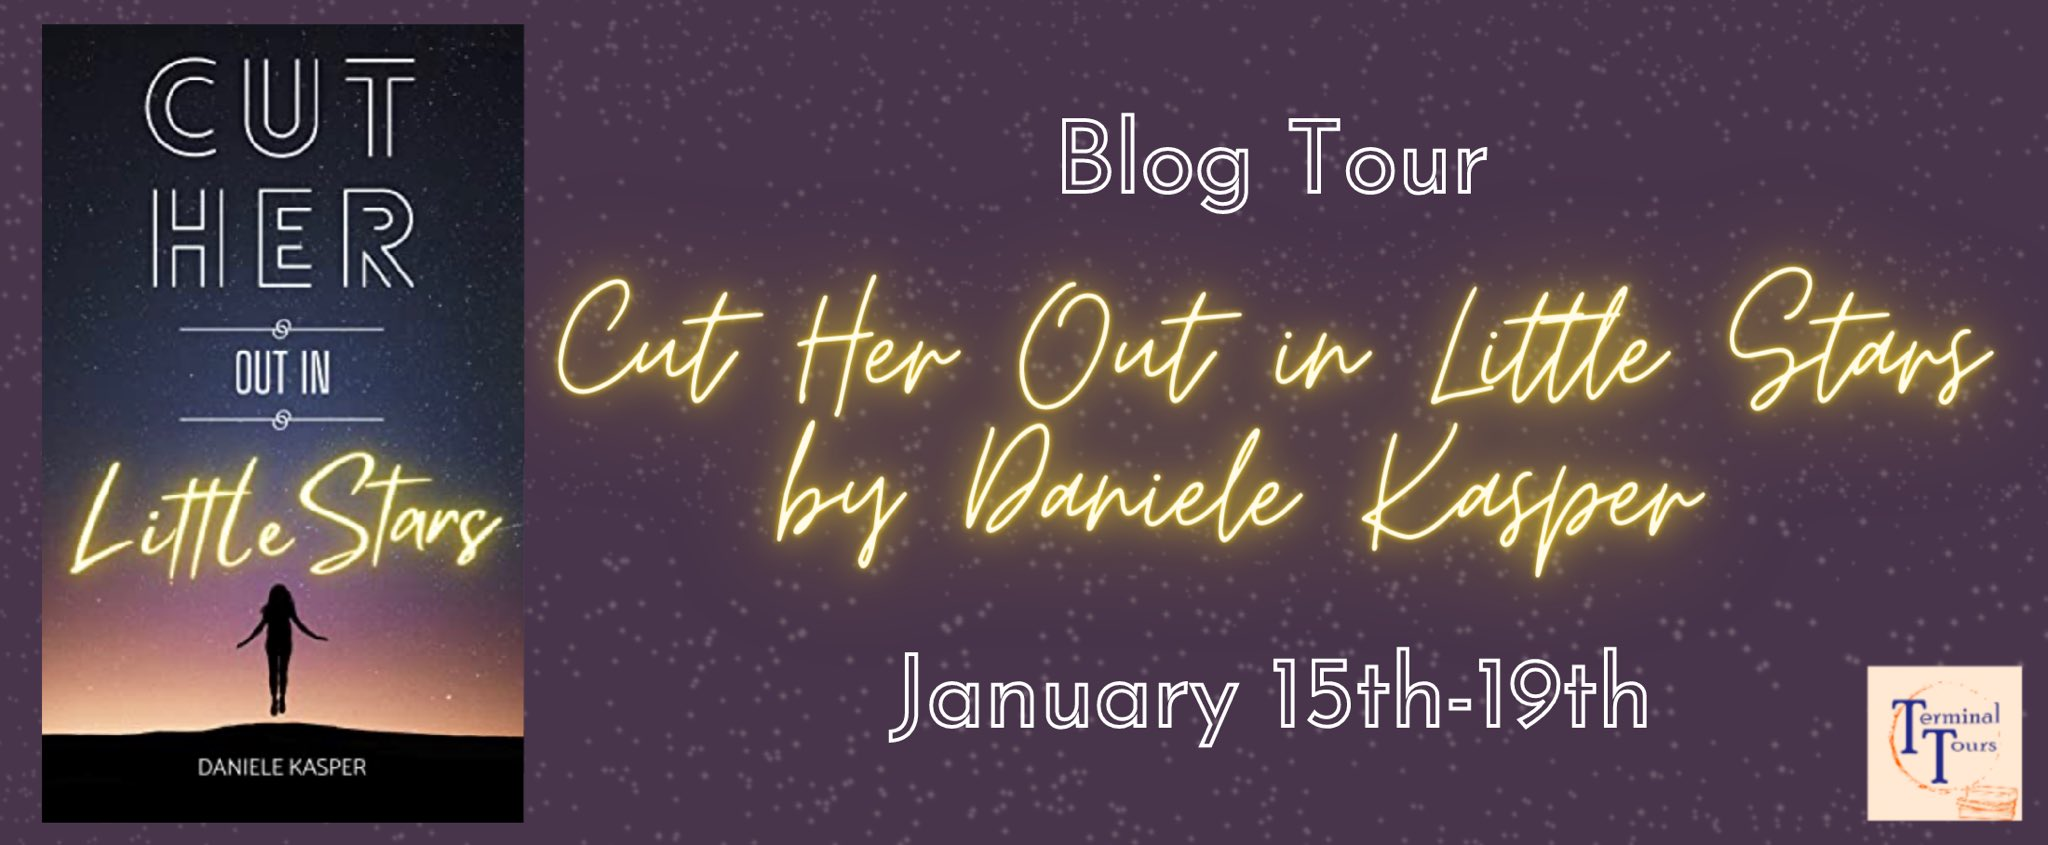 Blog Tour: Cut Her Out in Little Stars by Daniele Kasper (Interview!)